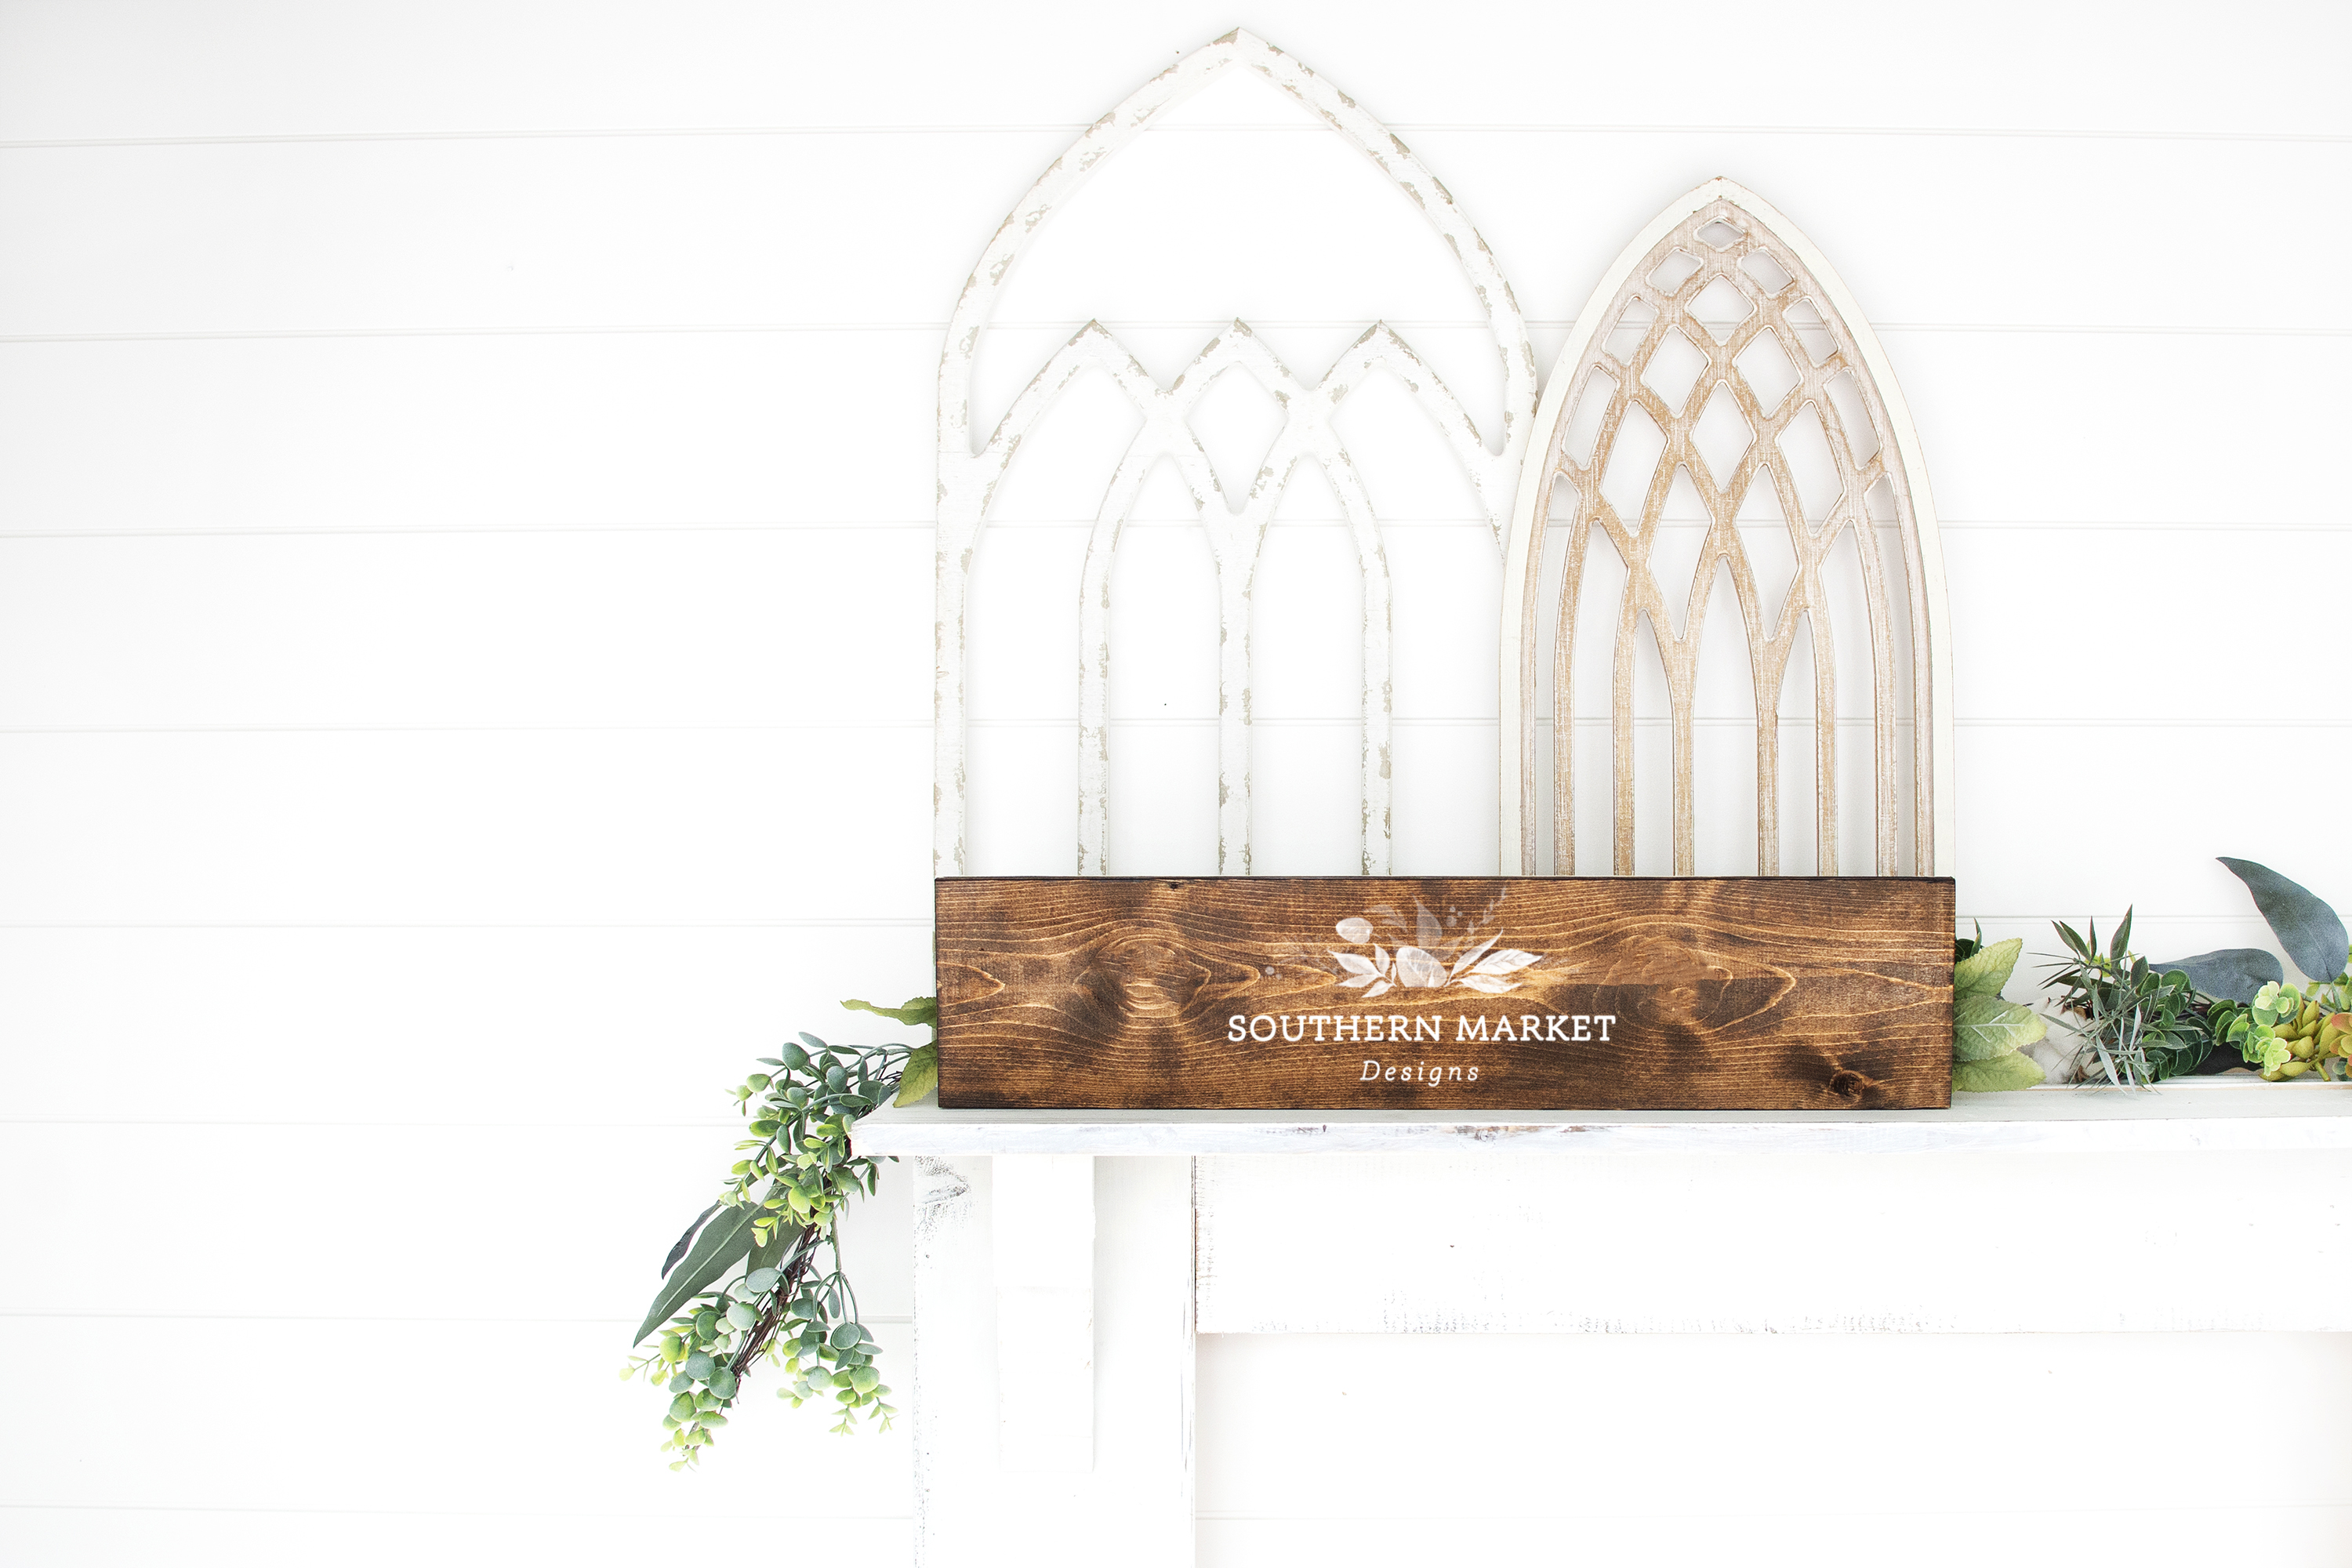 6x24 Stained Wood Sign Mock Up Farmhouse Styled Photo example image 1